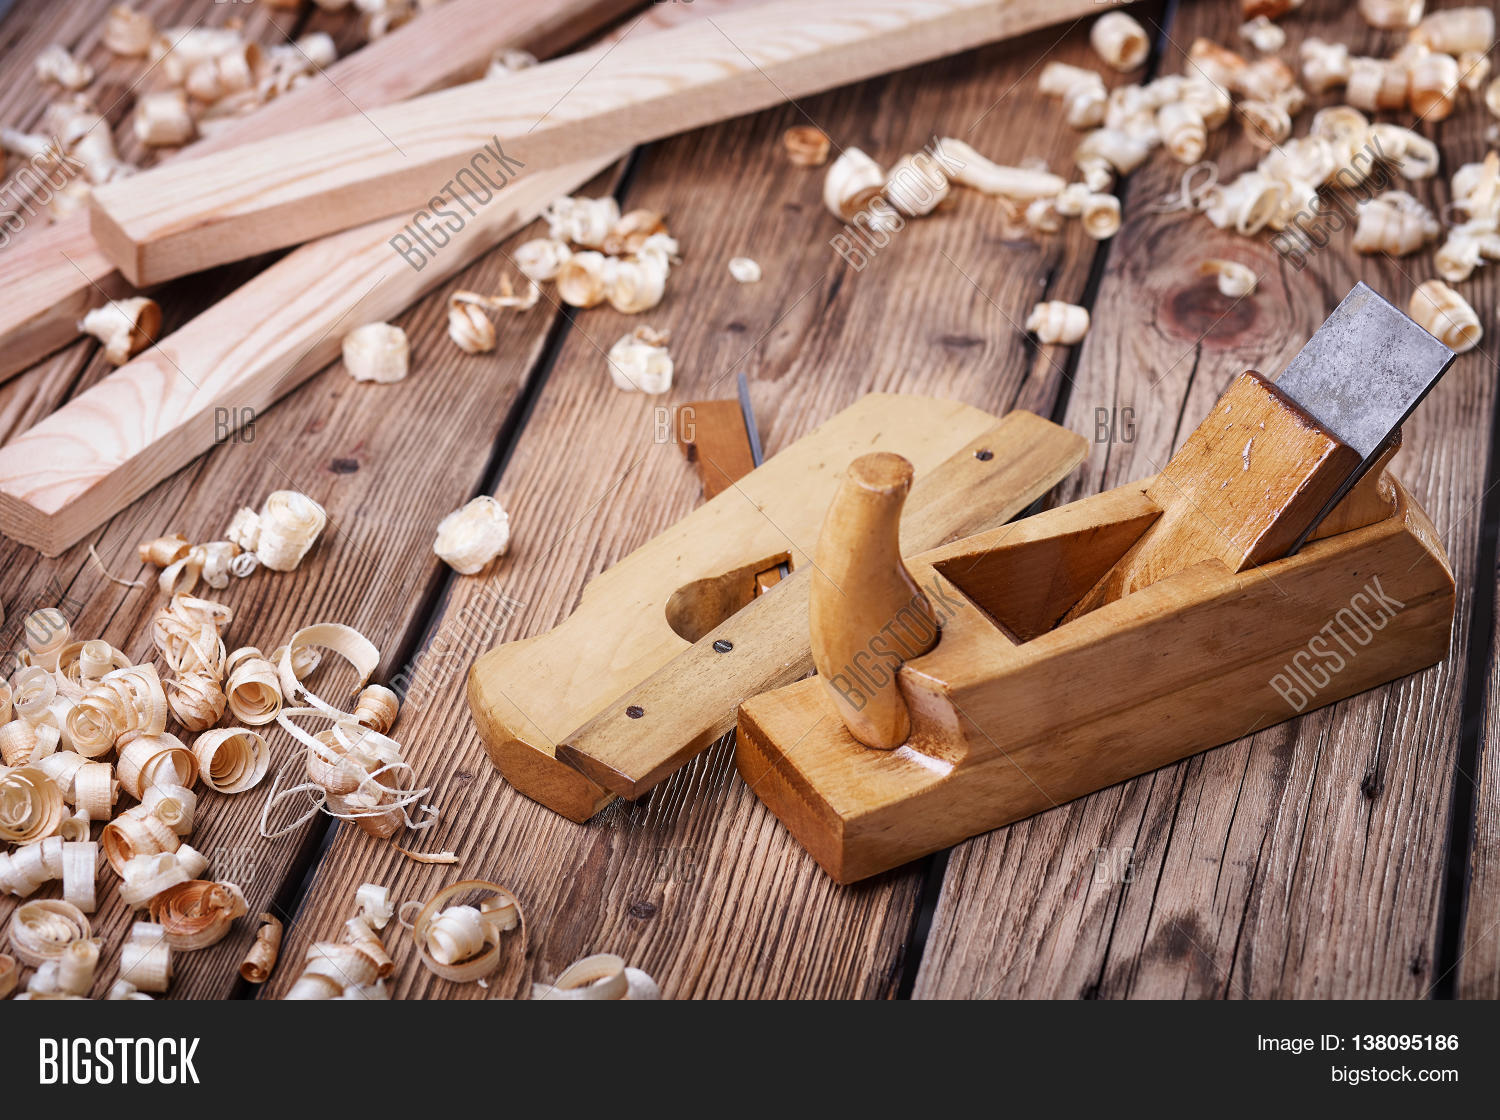 Wood Building Products : Wooden planer table old wood image photo bigstock